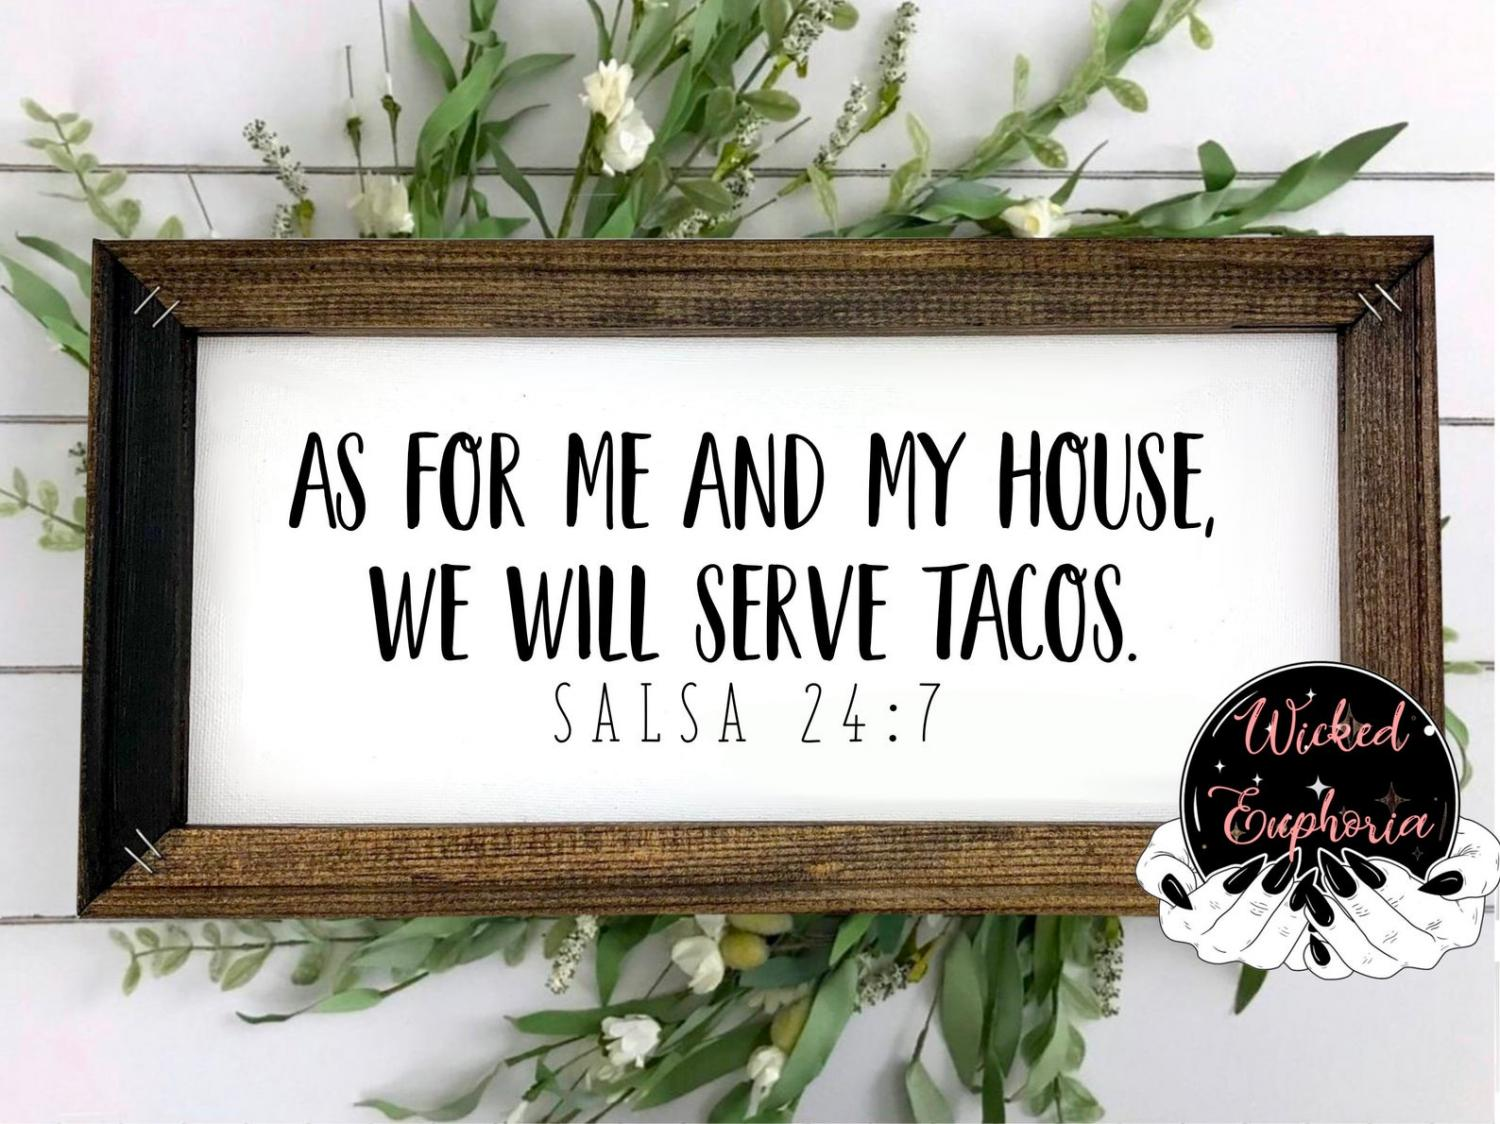 As For Me and My House We Will Serve Tacos - Salsa 24:7